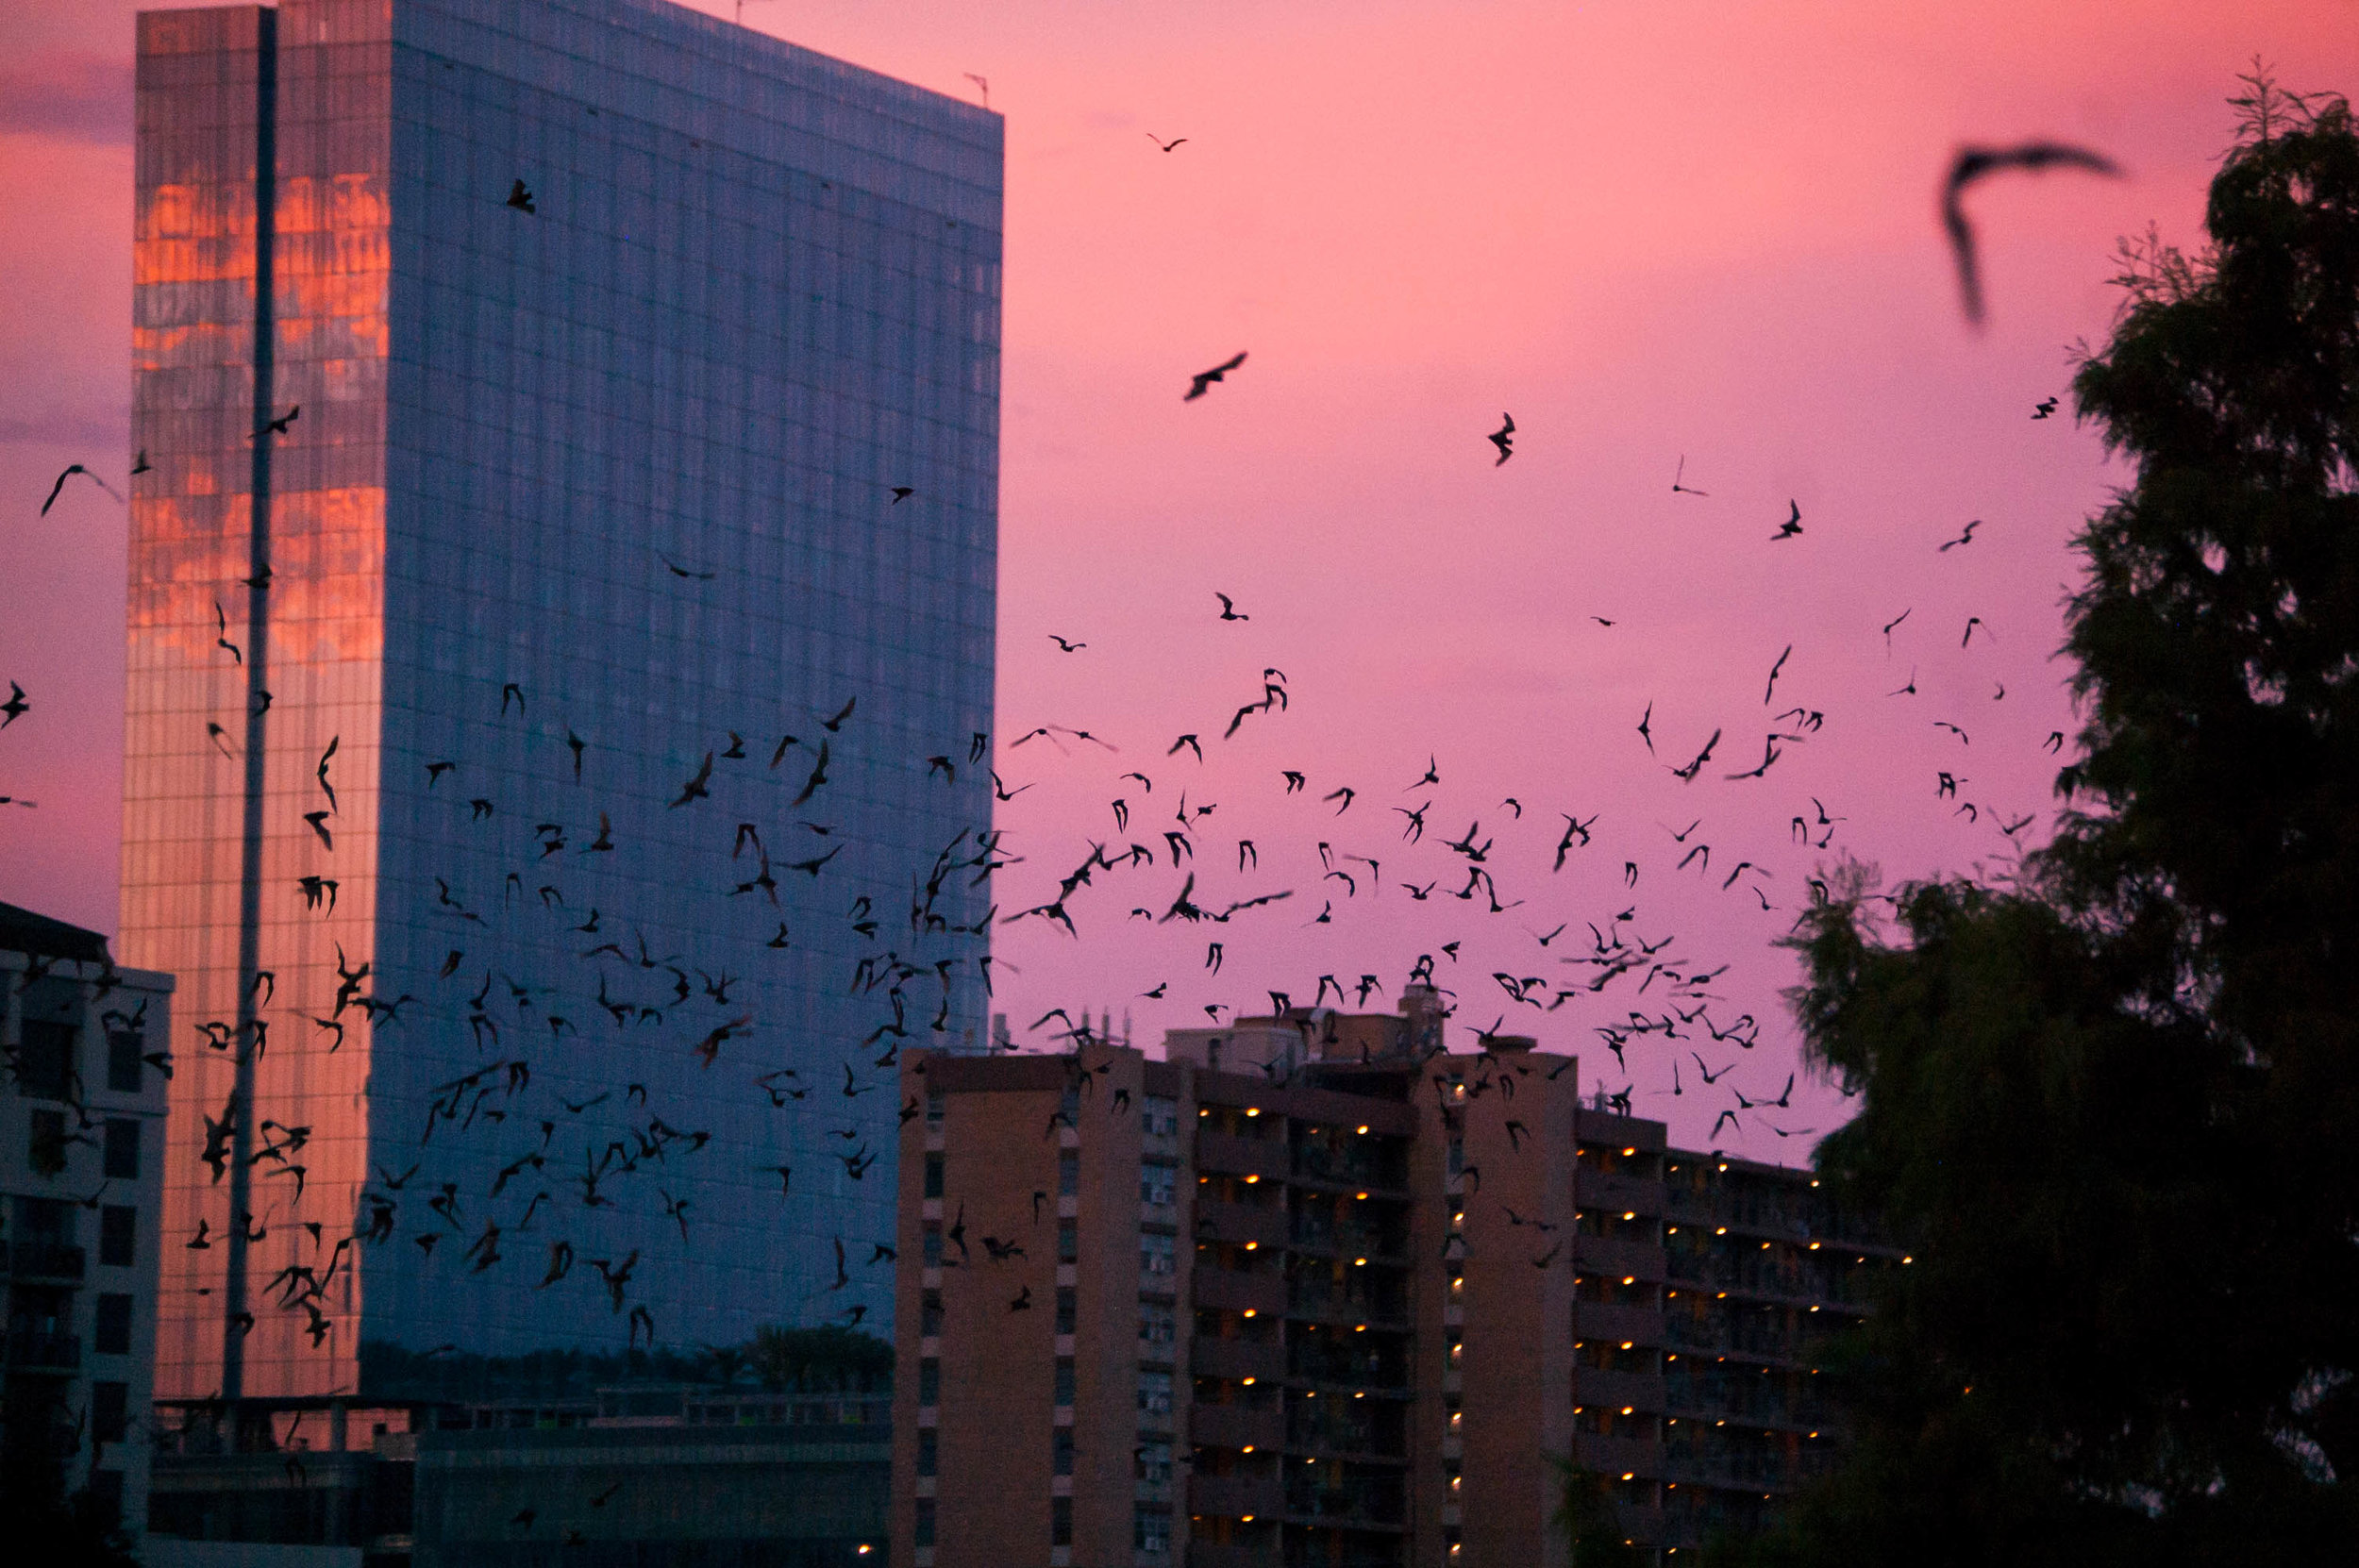 The largest urban bat colony in North America lives under the Ann Richards Congress Avenue Bridge in Austin, Texas.  Every night at sunset from March to November, 1.5 million Mexican free-tailed bats fly out for their nightly hunt.  The form clouds that loop and whirl around the skyscrapers, searching for insects all night long until they return to their hidden home under the bridge just before sunrise.